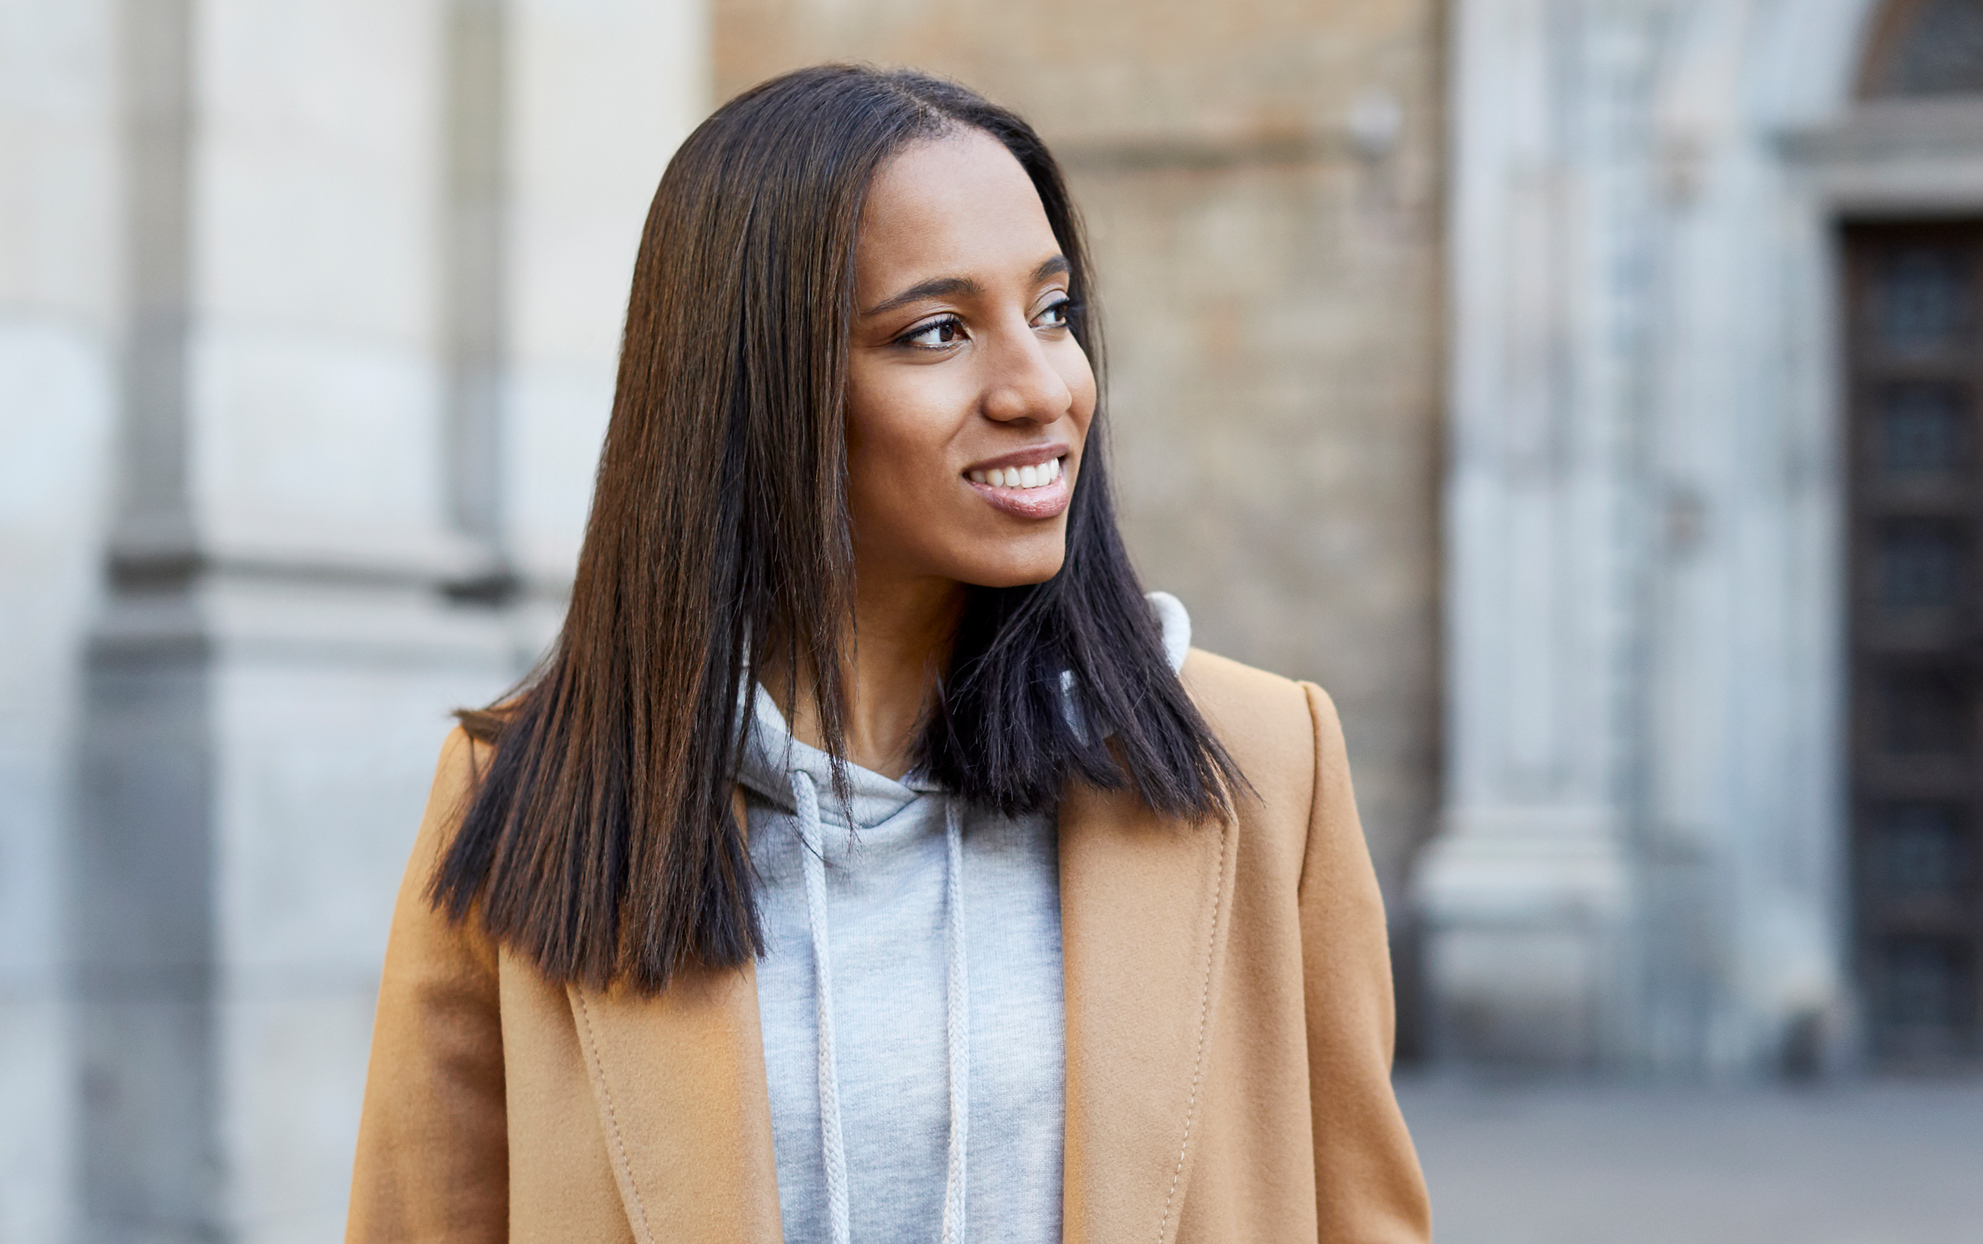 African American woman with straight hair outside